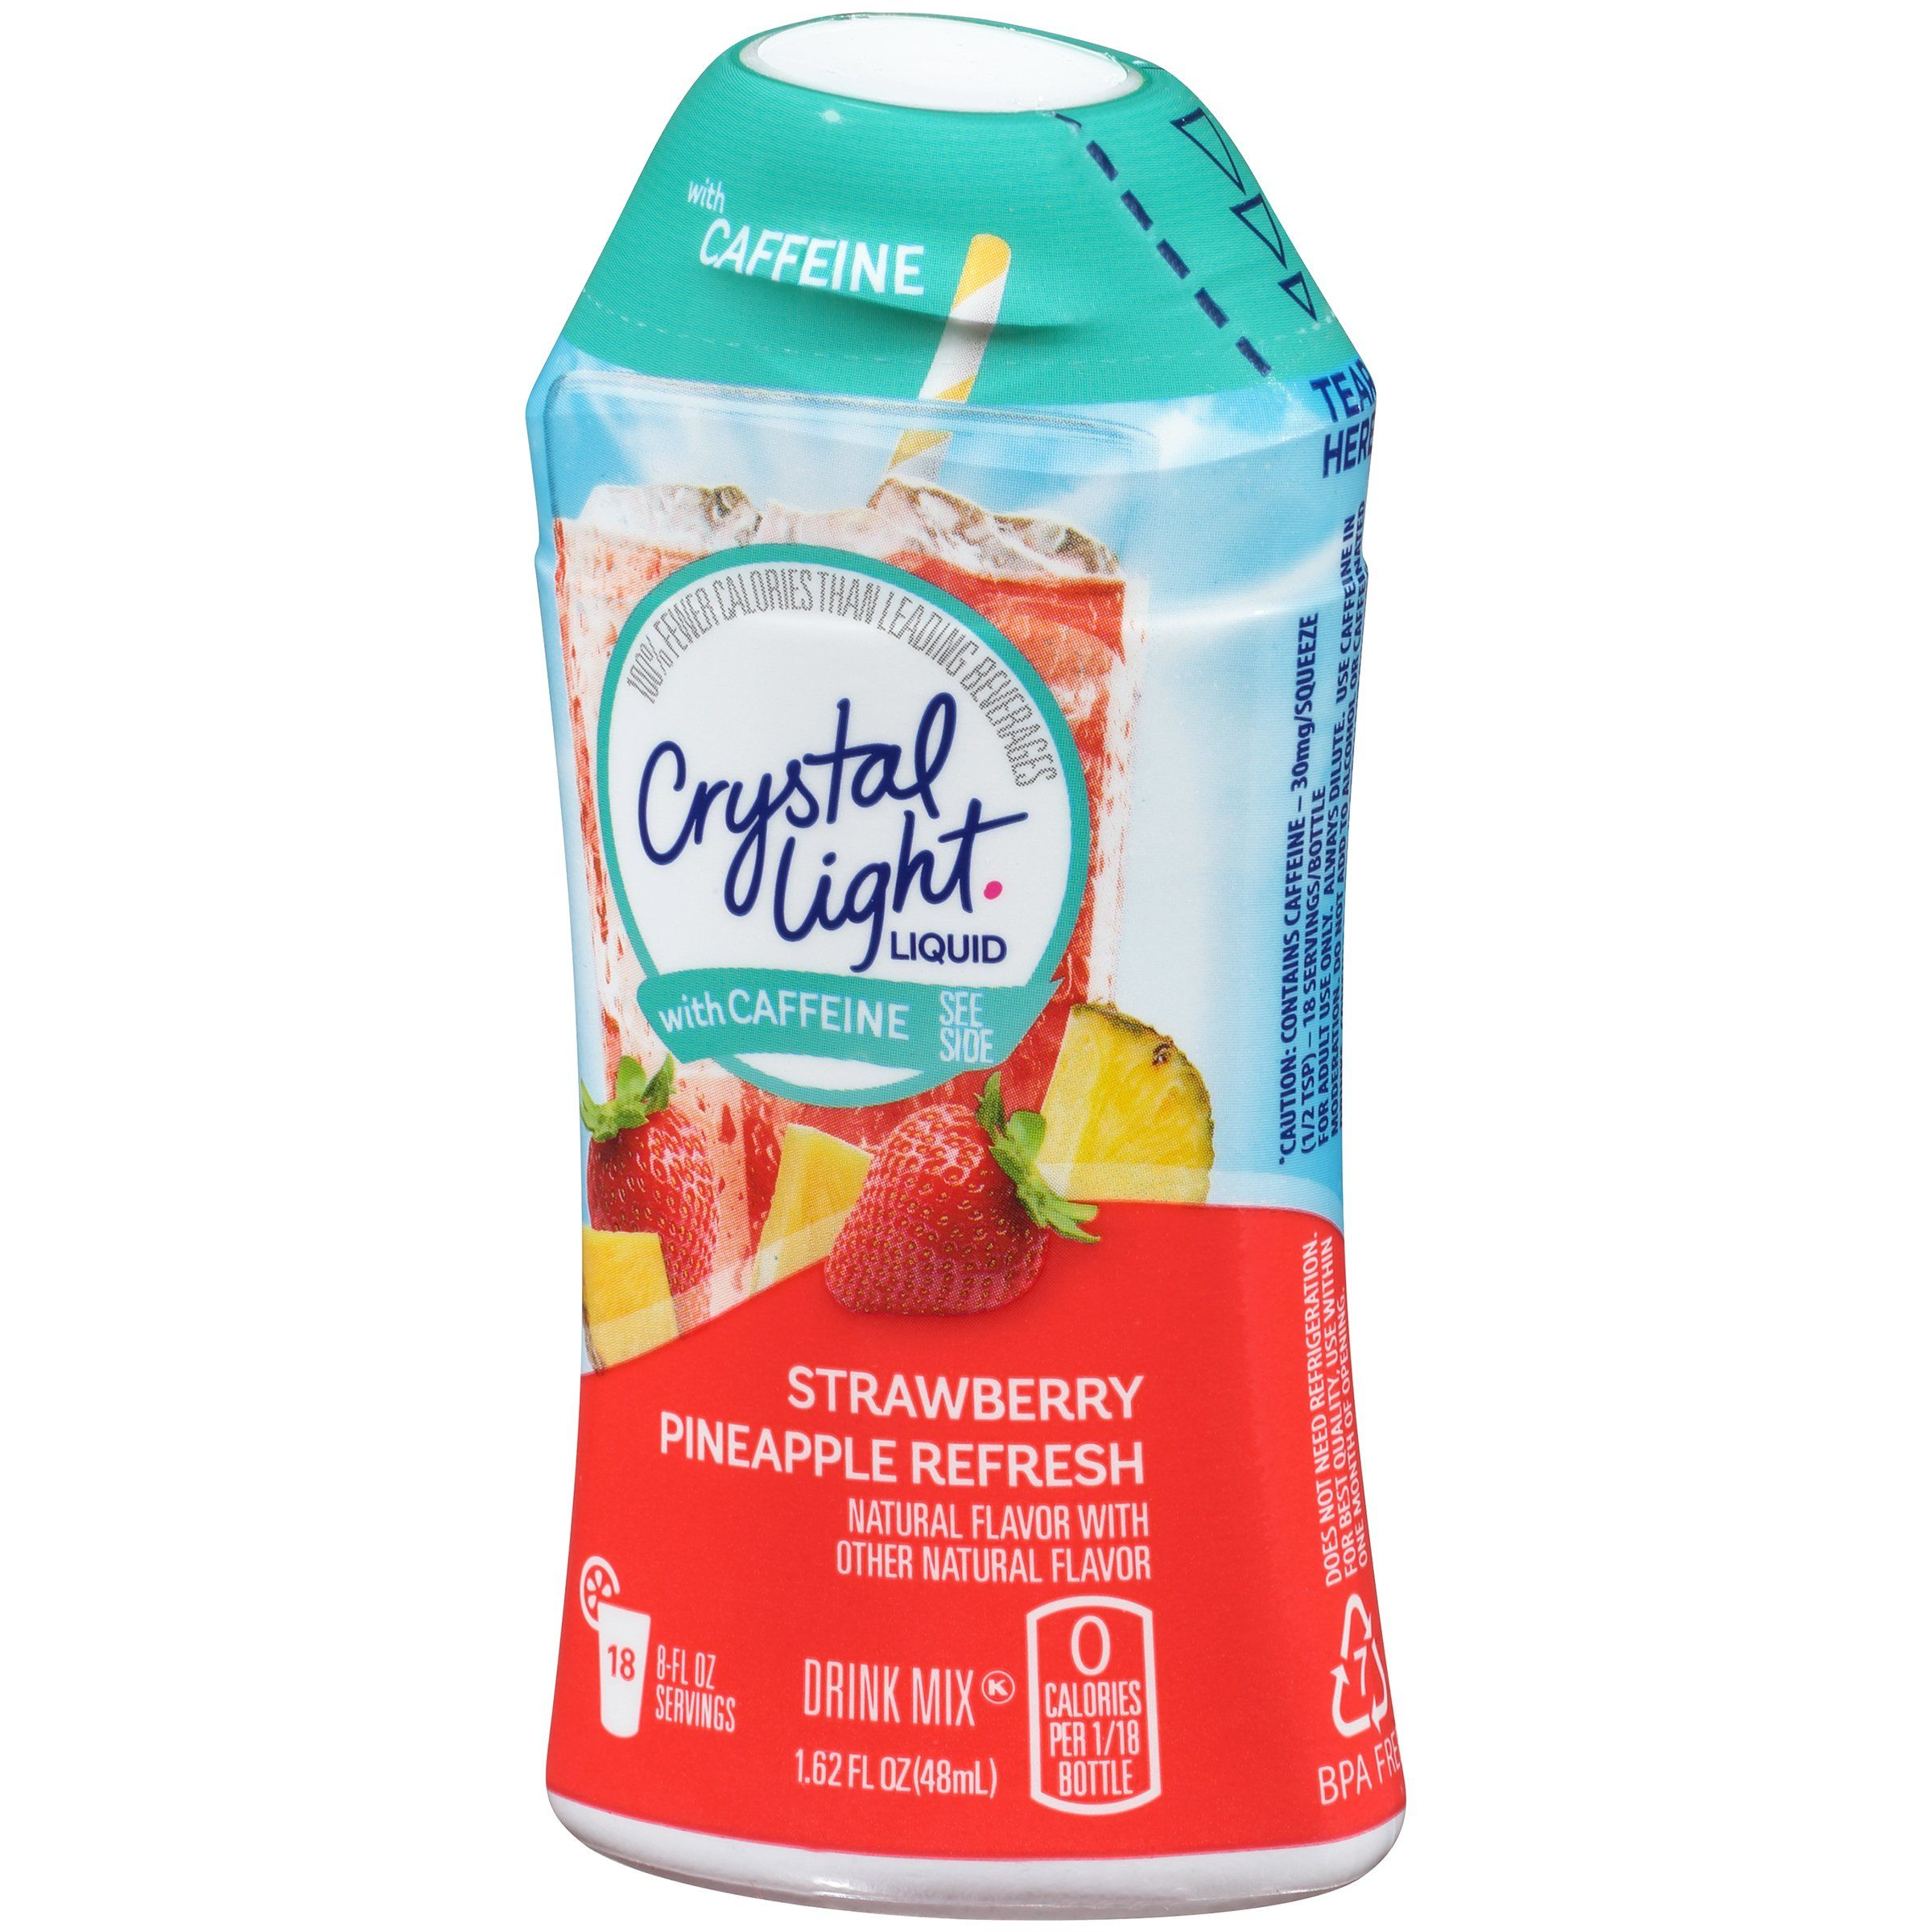 Crystal Light Liquid With Caffeine Strawberry Pineapple Refresh 1 62 Ounce You Can Get More Details Flavored Drinks Crystal Light Flavors Sugar Free Fruits